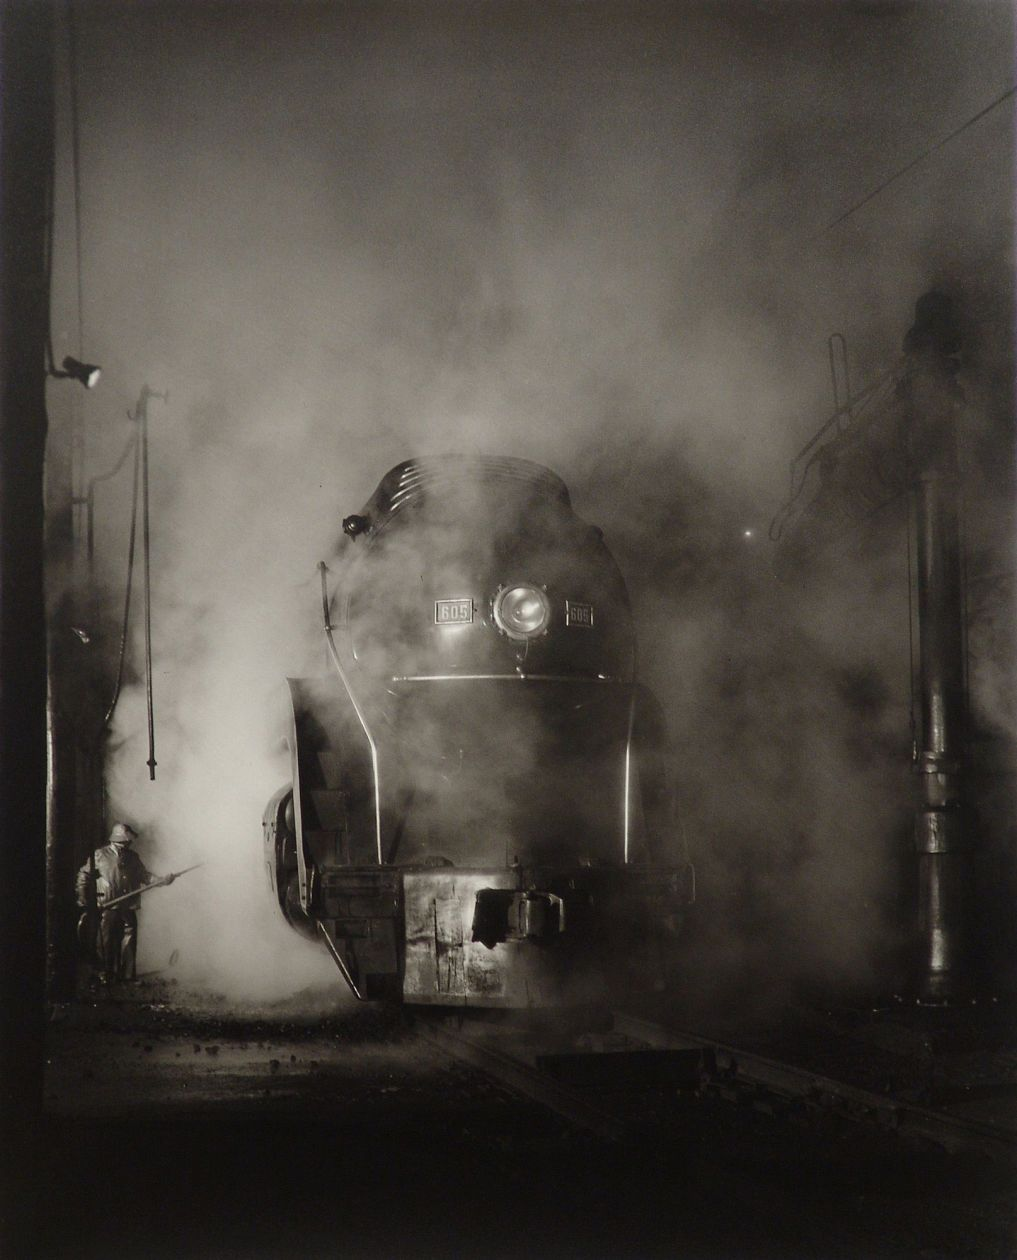 Washing J Class 605, Shaffer's Crossing, Roanoke, Virginia (1955) by O. Winston Link